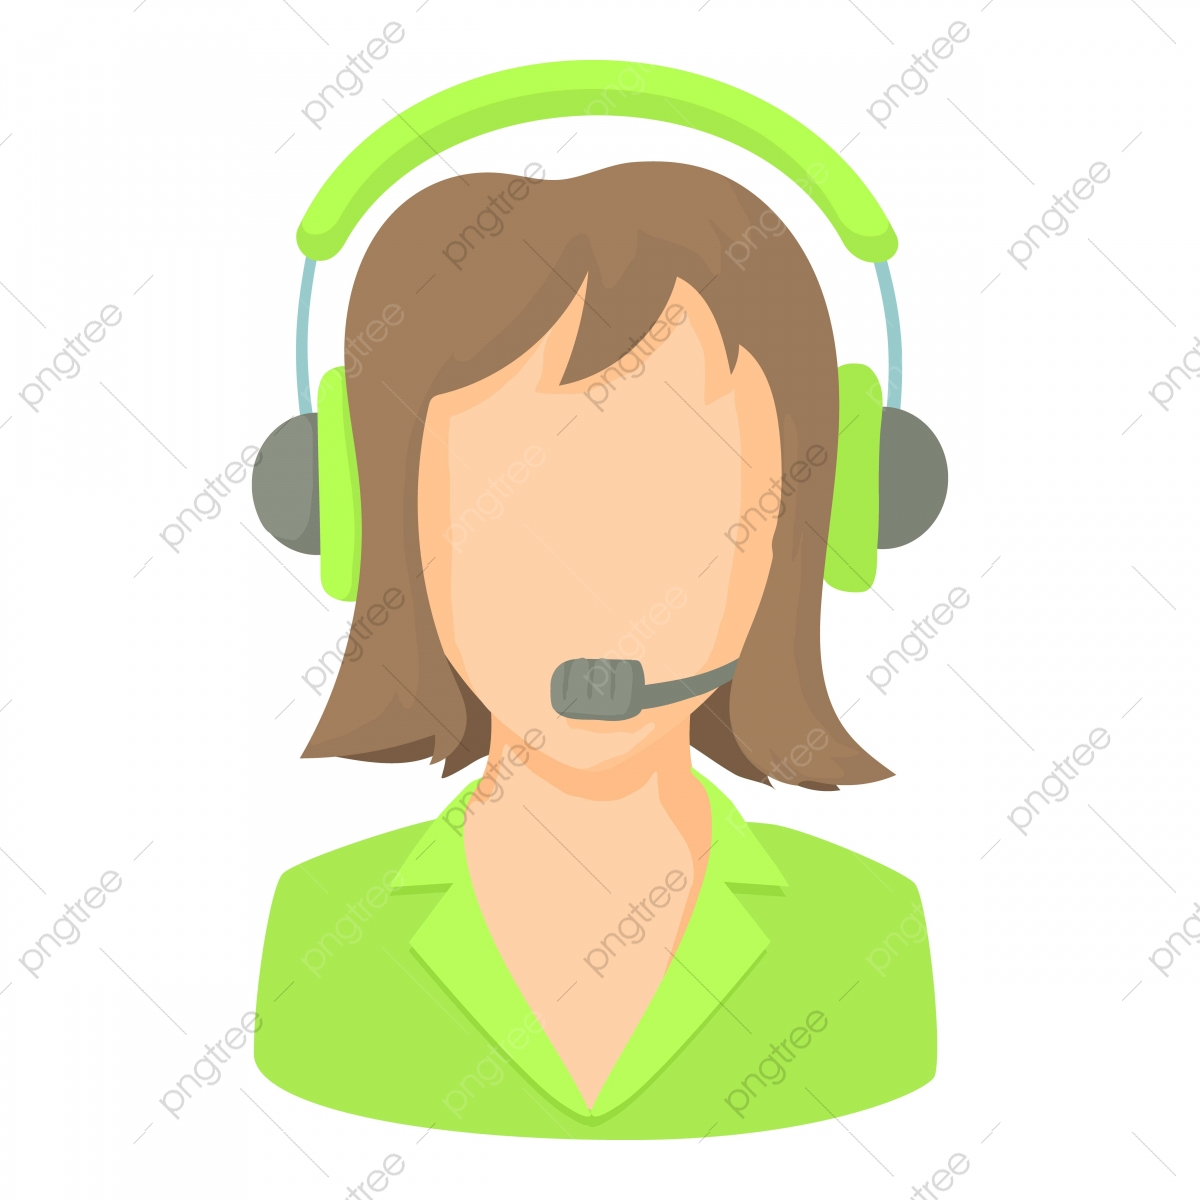 Phone Headset Png Vector Psd And Clipart With Transparent Background For Free Download Pngtree